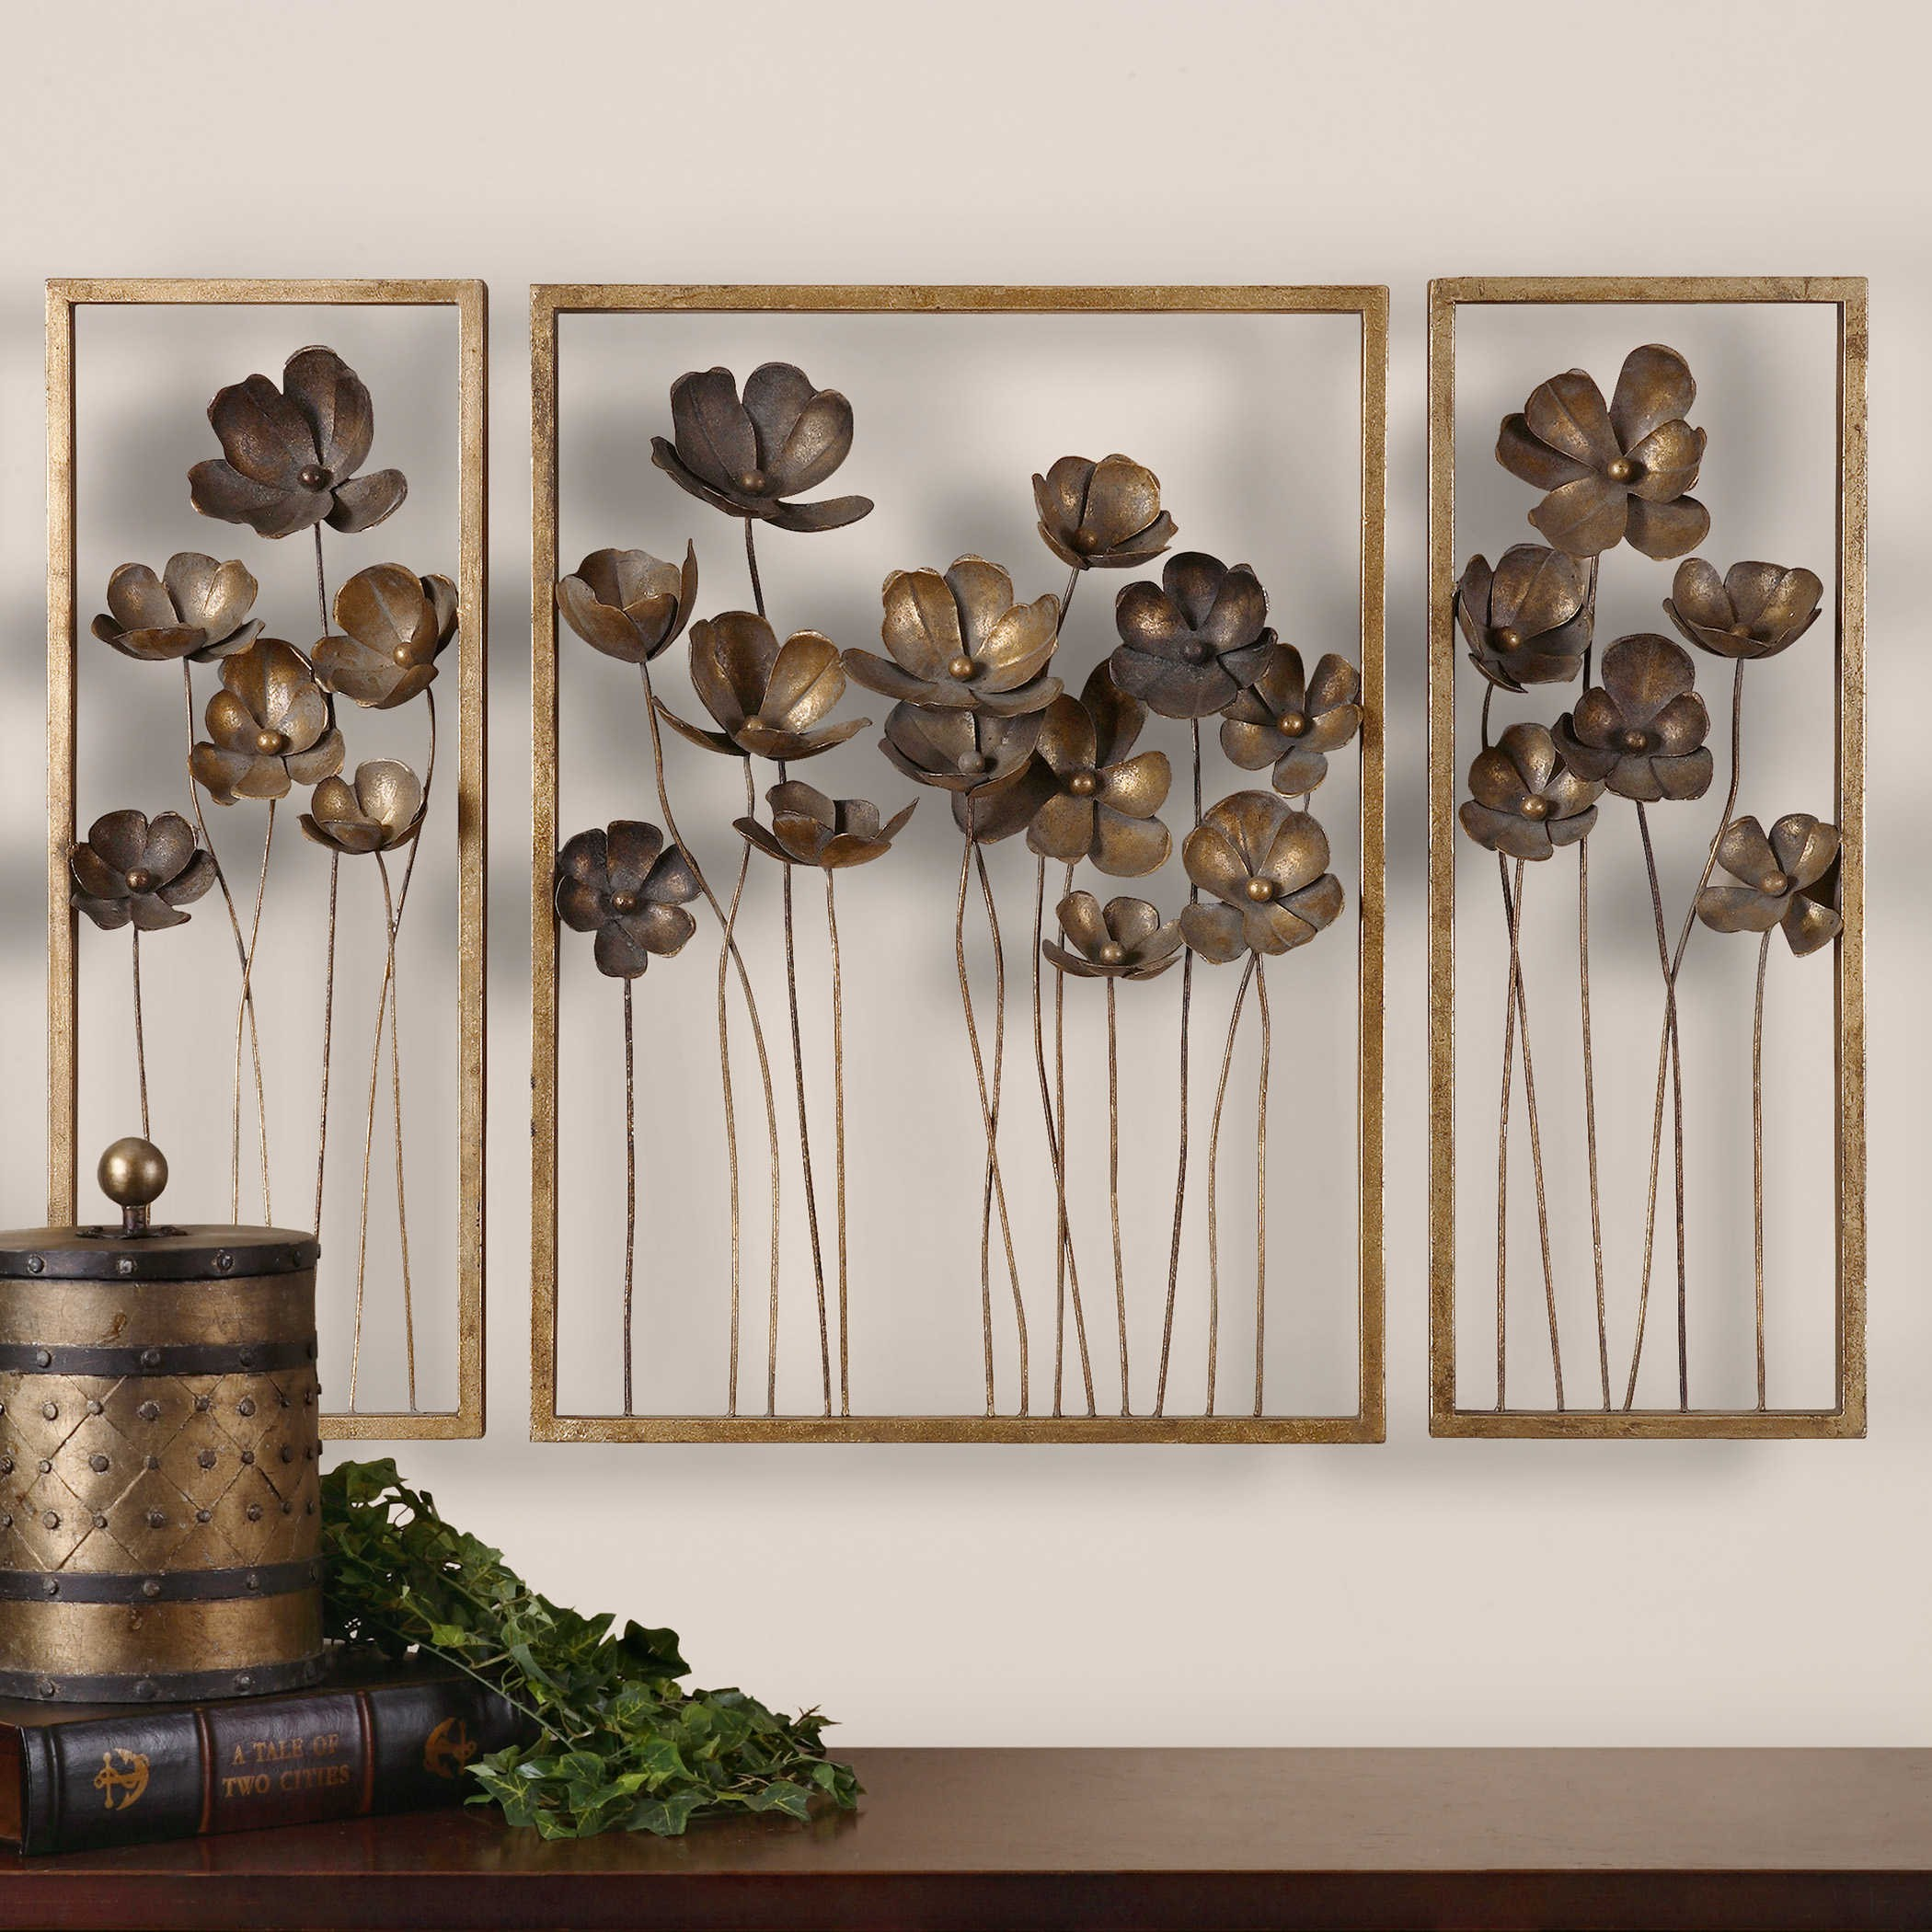 Metal leaf wall hanging 27 : wall art leaves - www.pureclipart.com